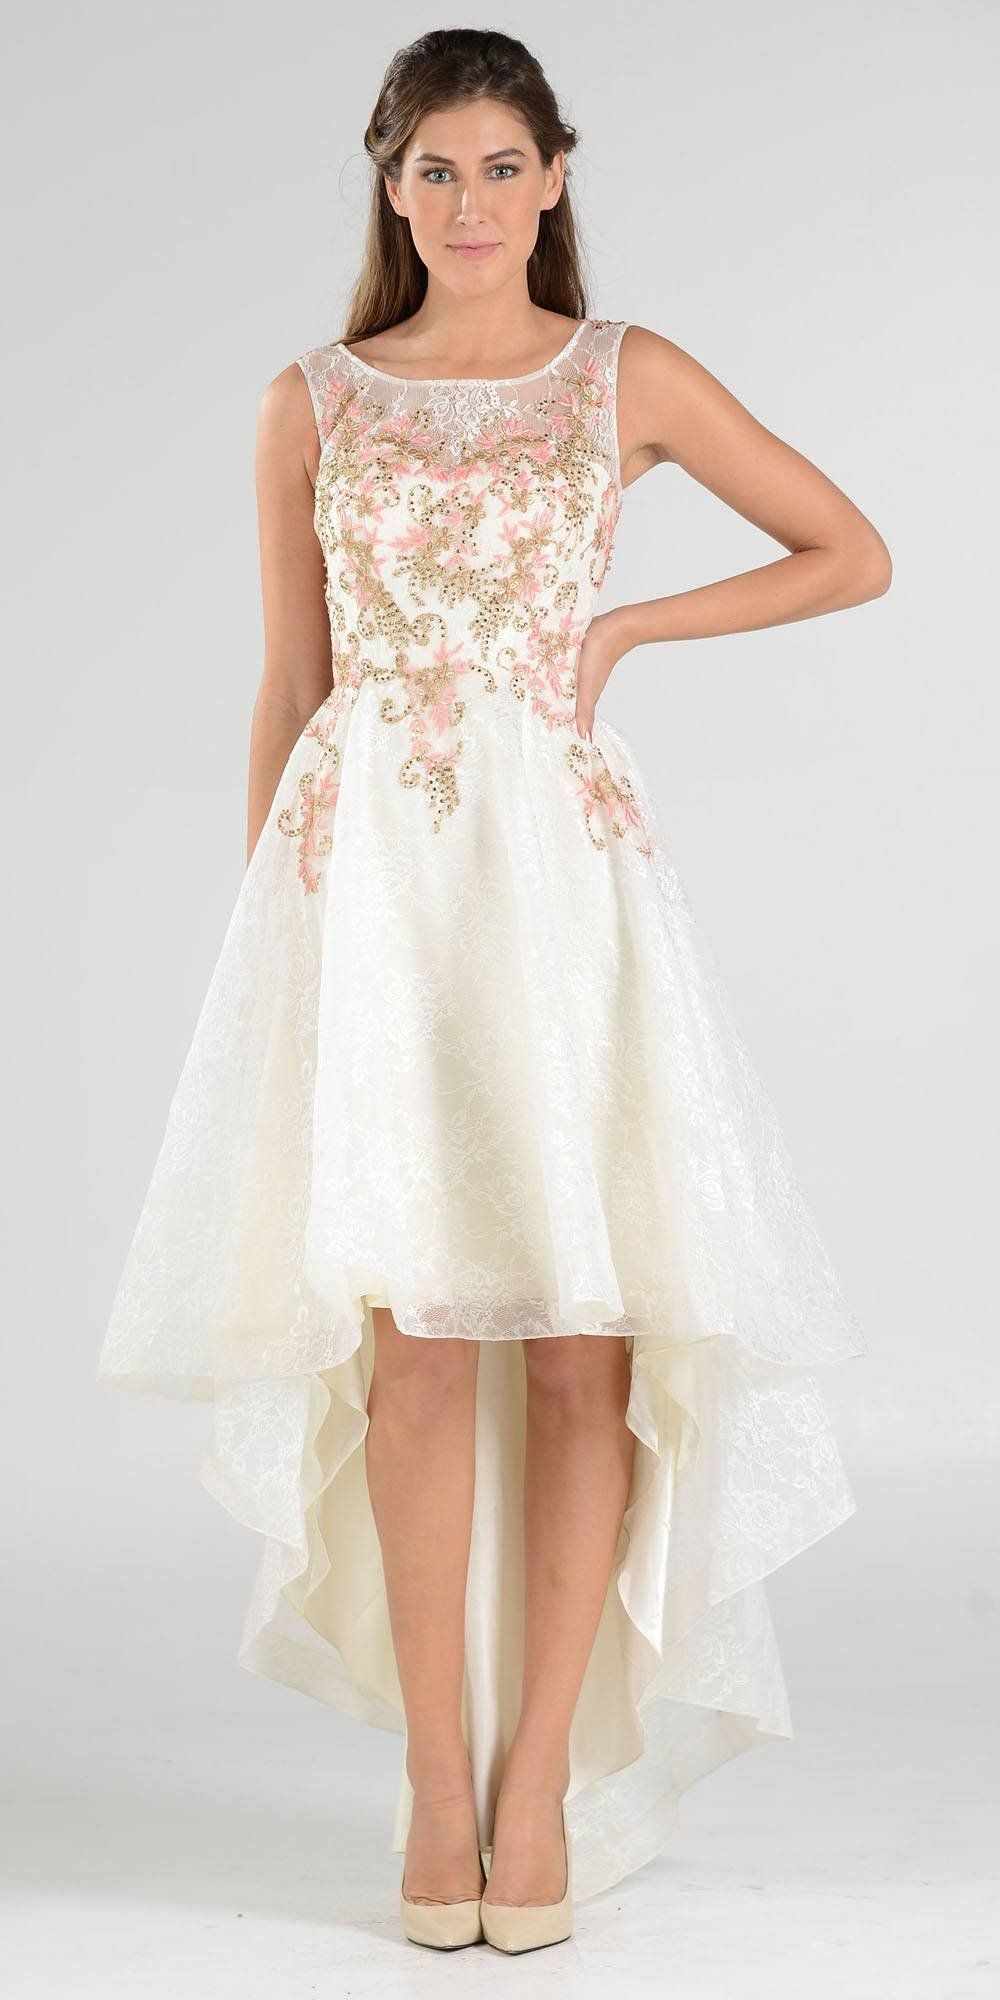 High and low lace embroidered off whiteblue prom dress sleeveless